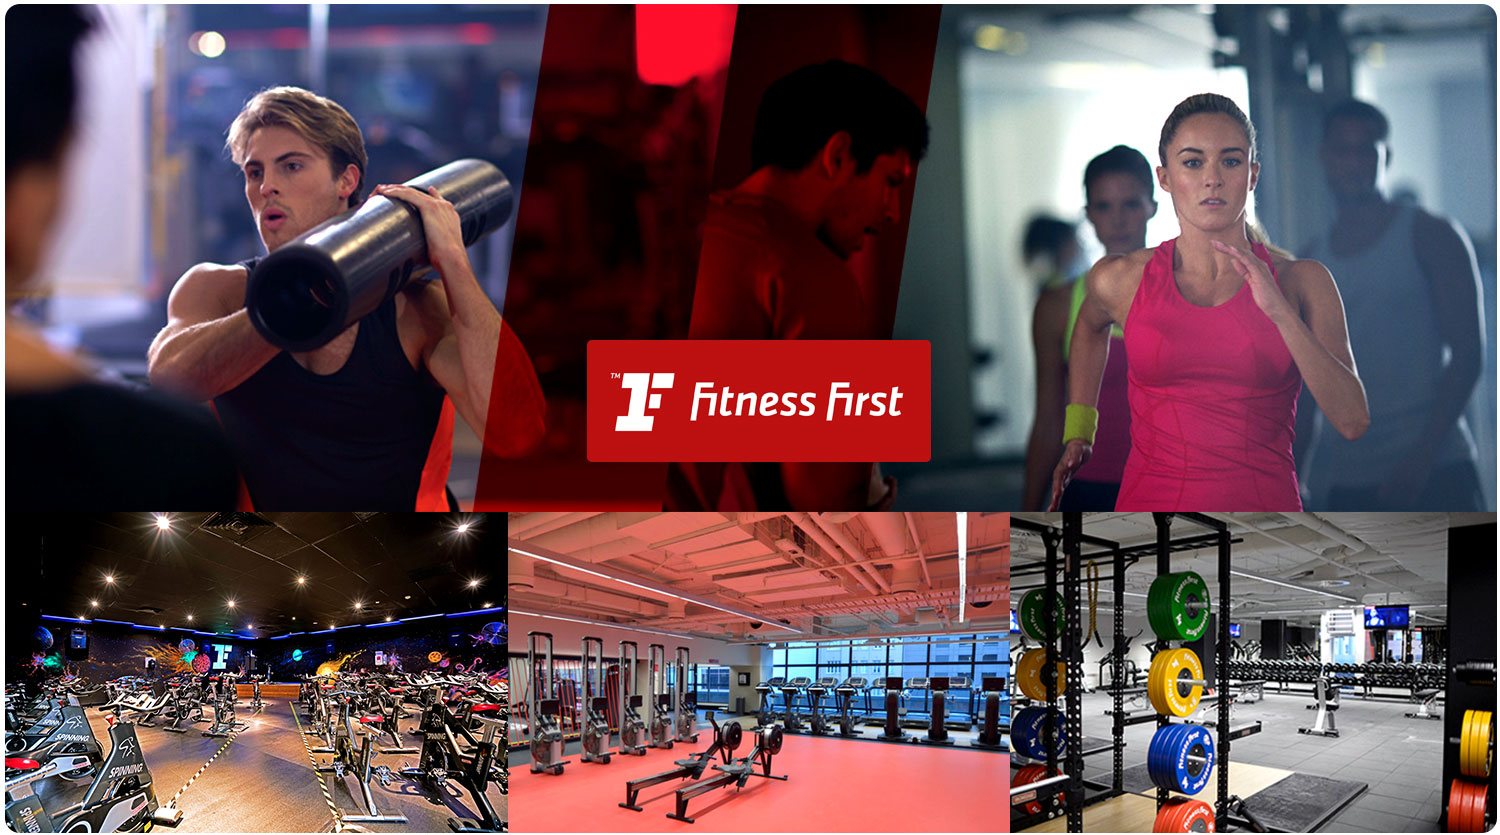 Start your Fitness Journey with Fitness First with only $14.95 for 14 days at Fitness First Pennant Hills NSW. Experience our first class gym and freestyle classes inc. Zumba, Pilates, Yoga, Les Mills and more. Take the first step with Fitness First Pennant Hills NSW.